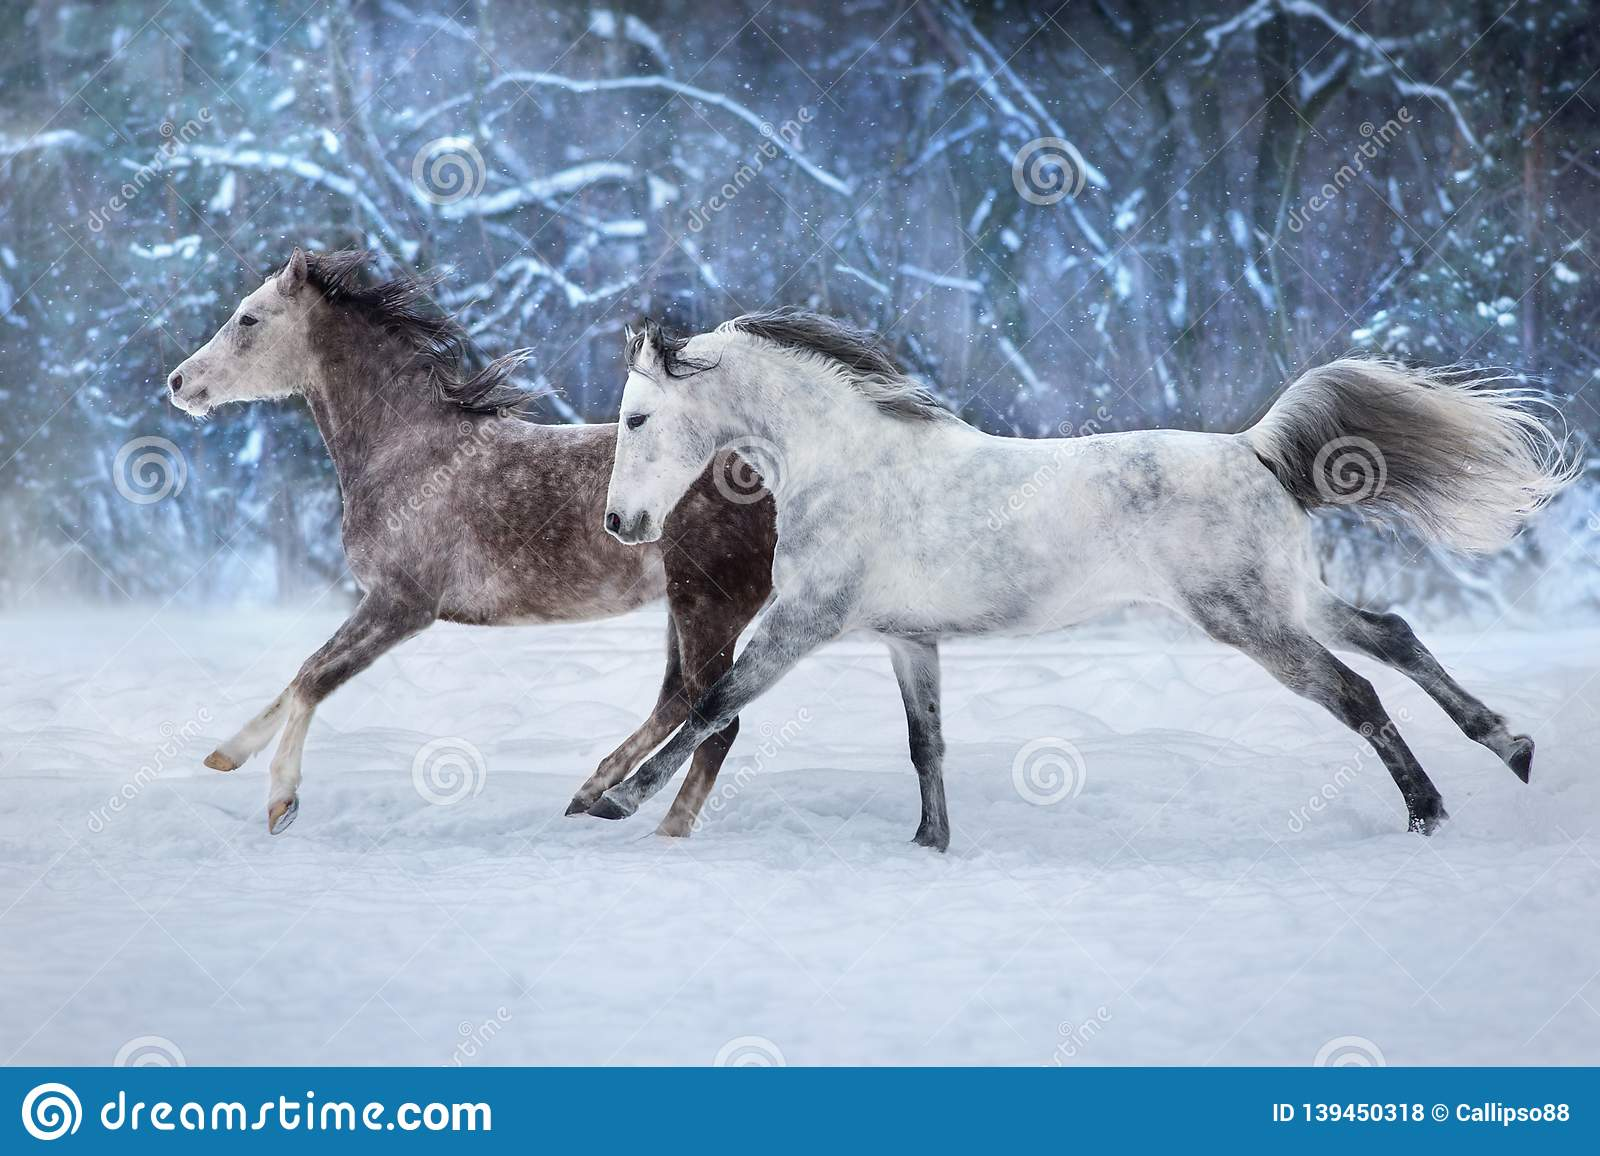 10 857 Horses Snow Photos Free Royalty Free Stock Photos From Dreamstime